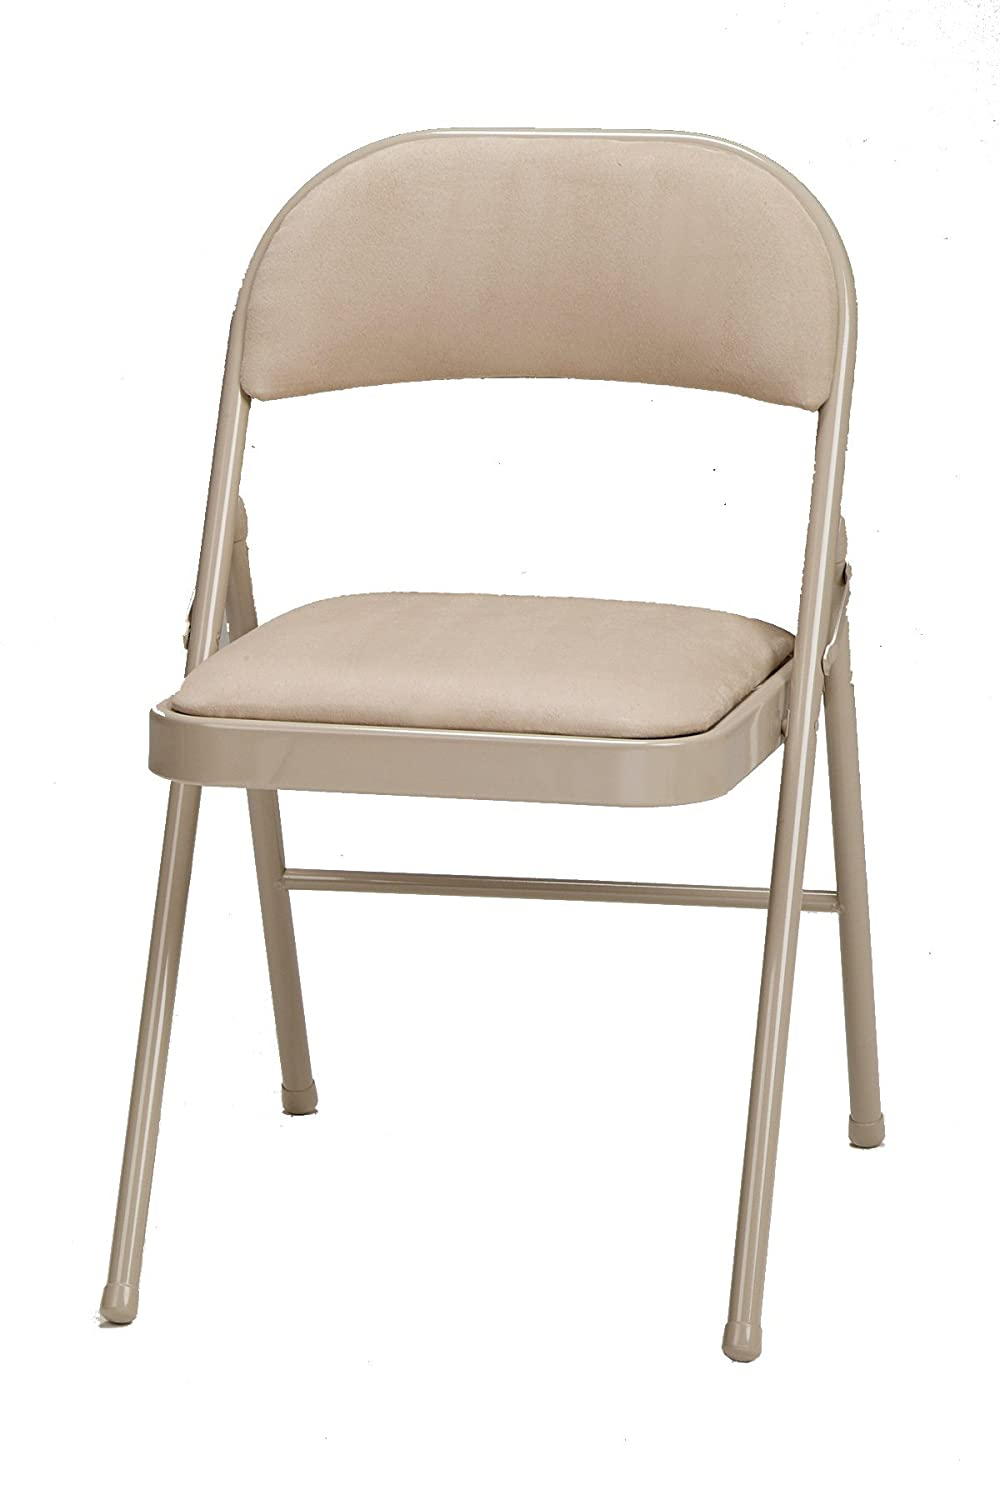 Amazon.com: Meco 4 Pack Deluxe Fabric Padded Folding Chair, Buff Frame And  Sand Fabric Seat And Back: Kitchen U0026 Dining